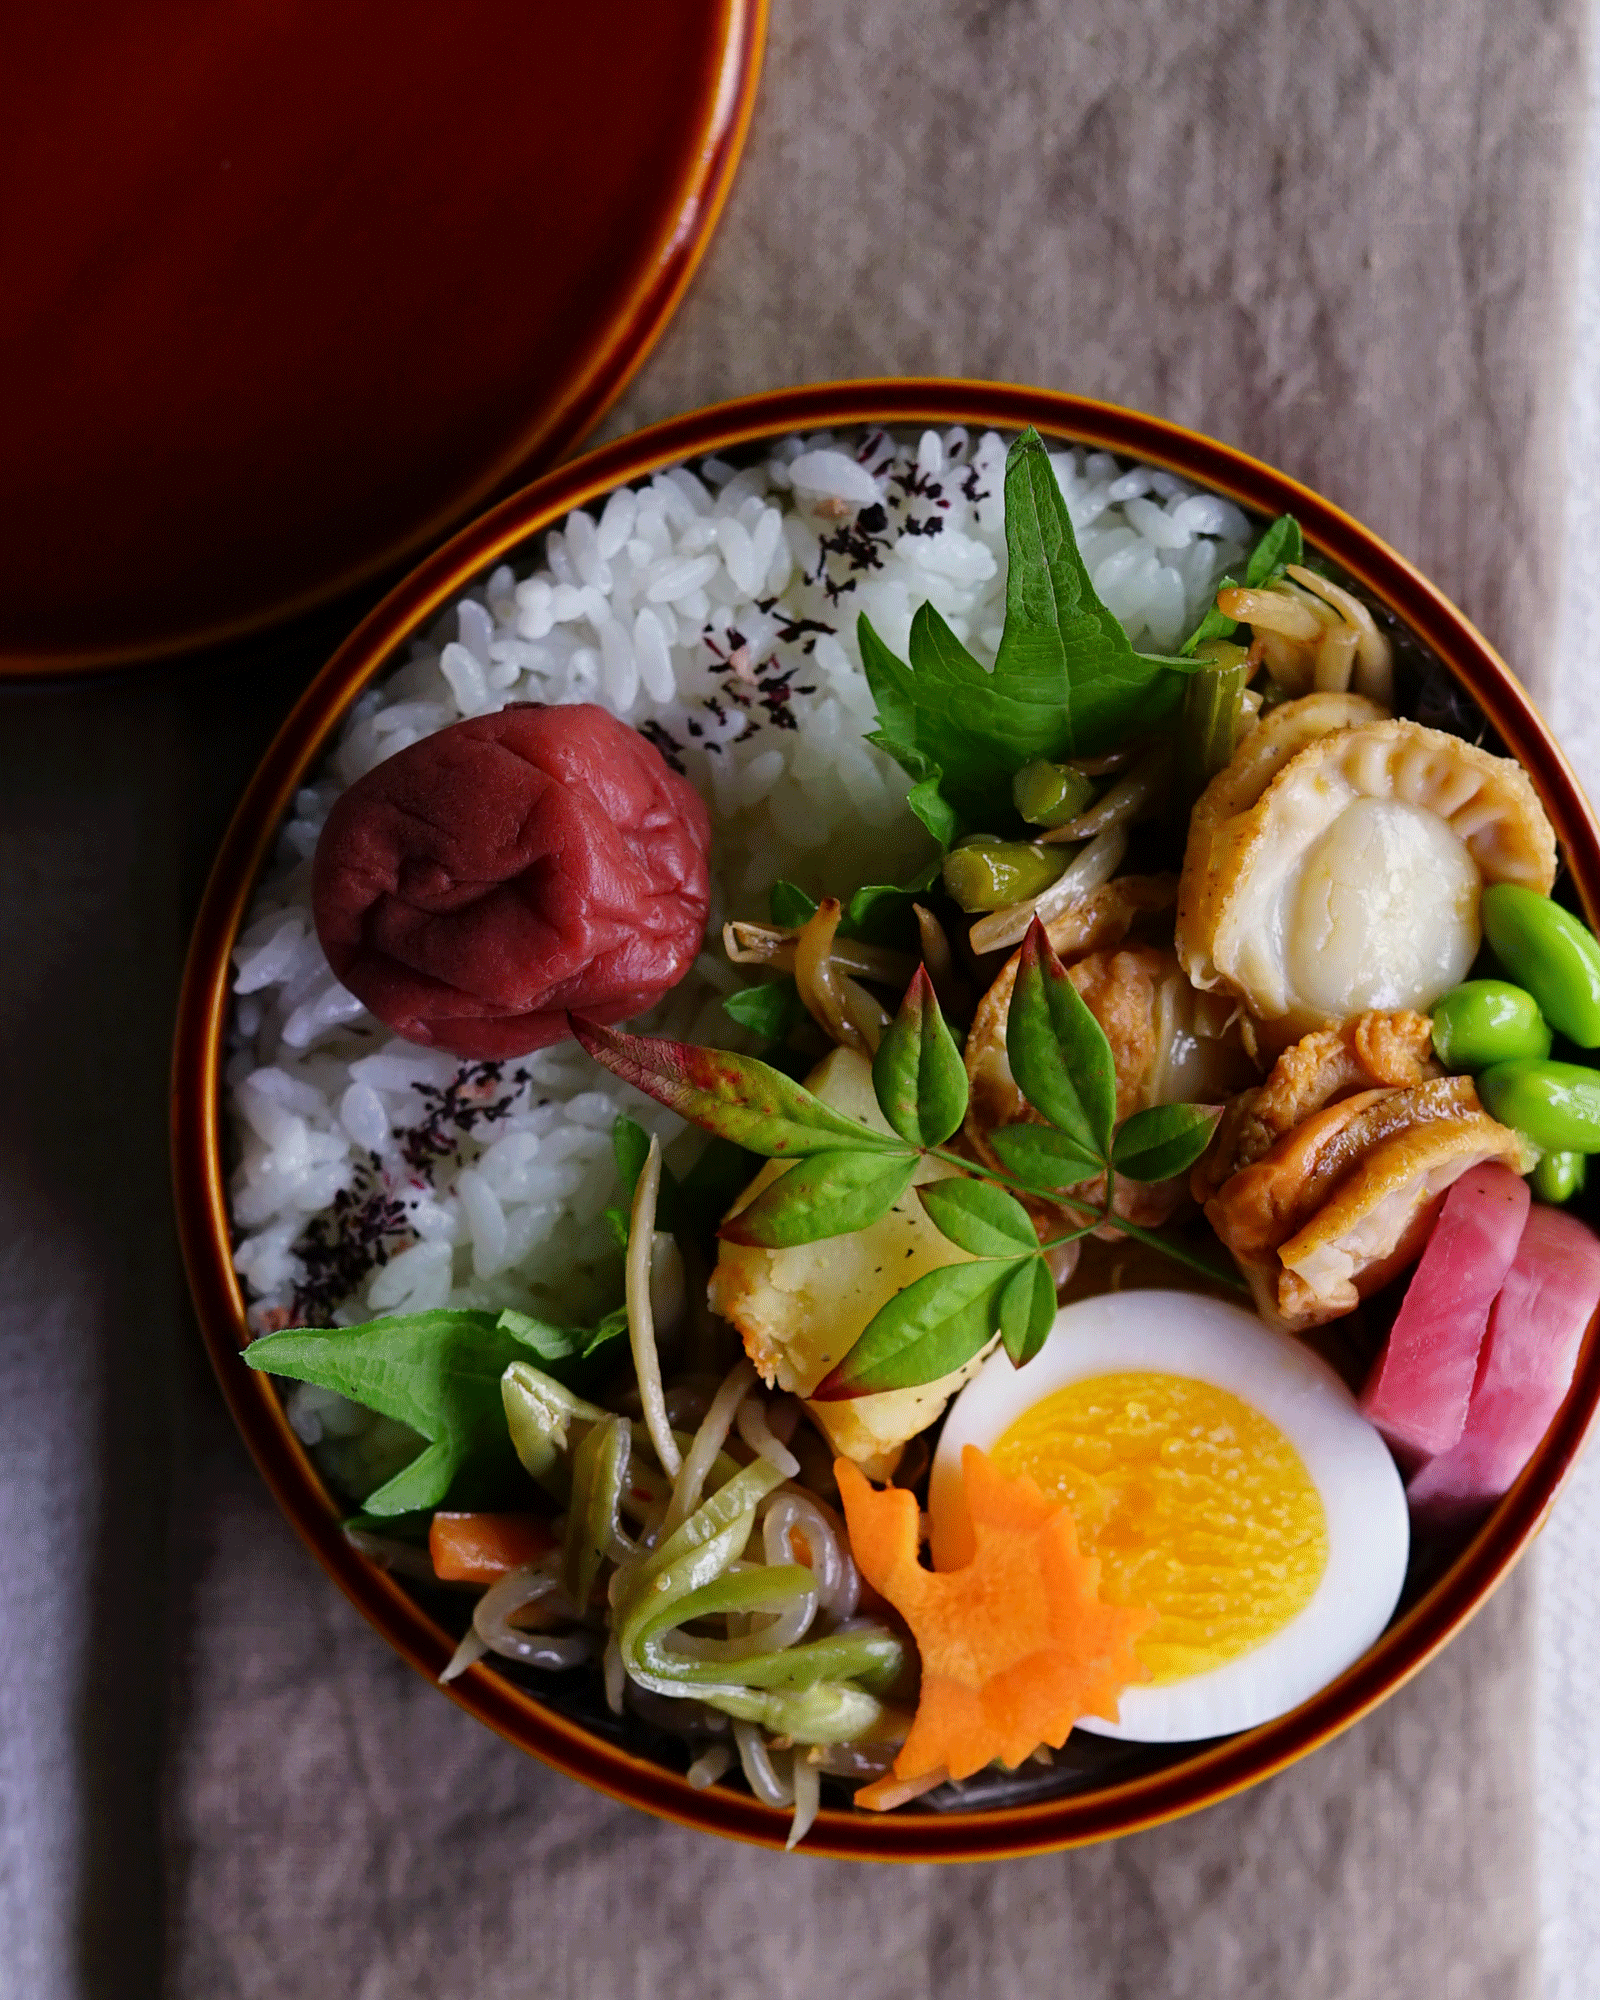 Scallop, garlic scape and sprout stir-fry bento/帆立と大蒜の芽ともやしの炒め物弁当